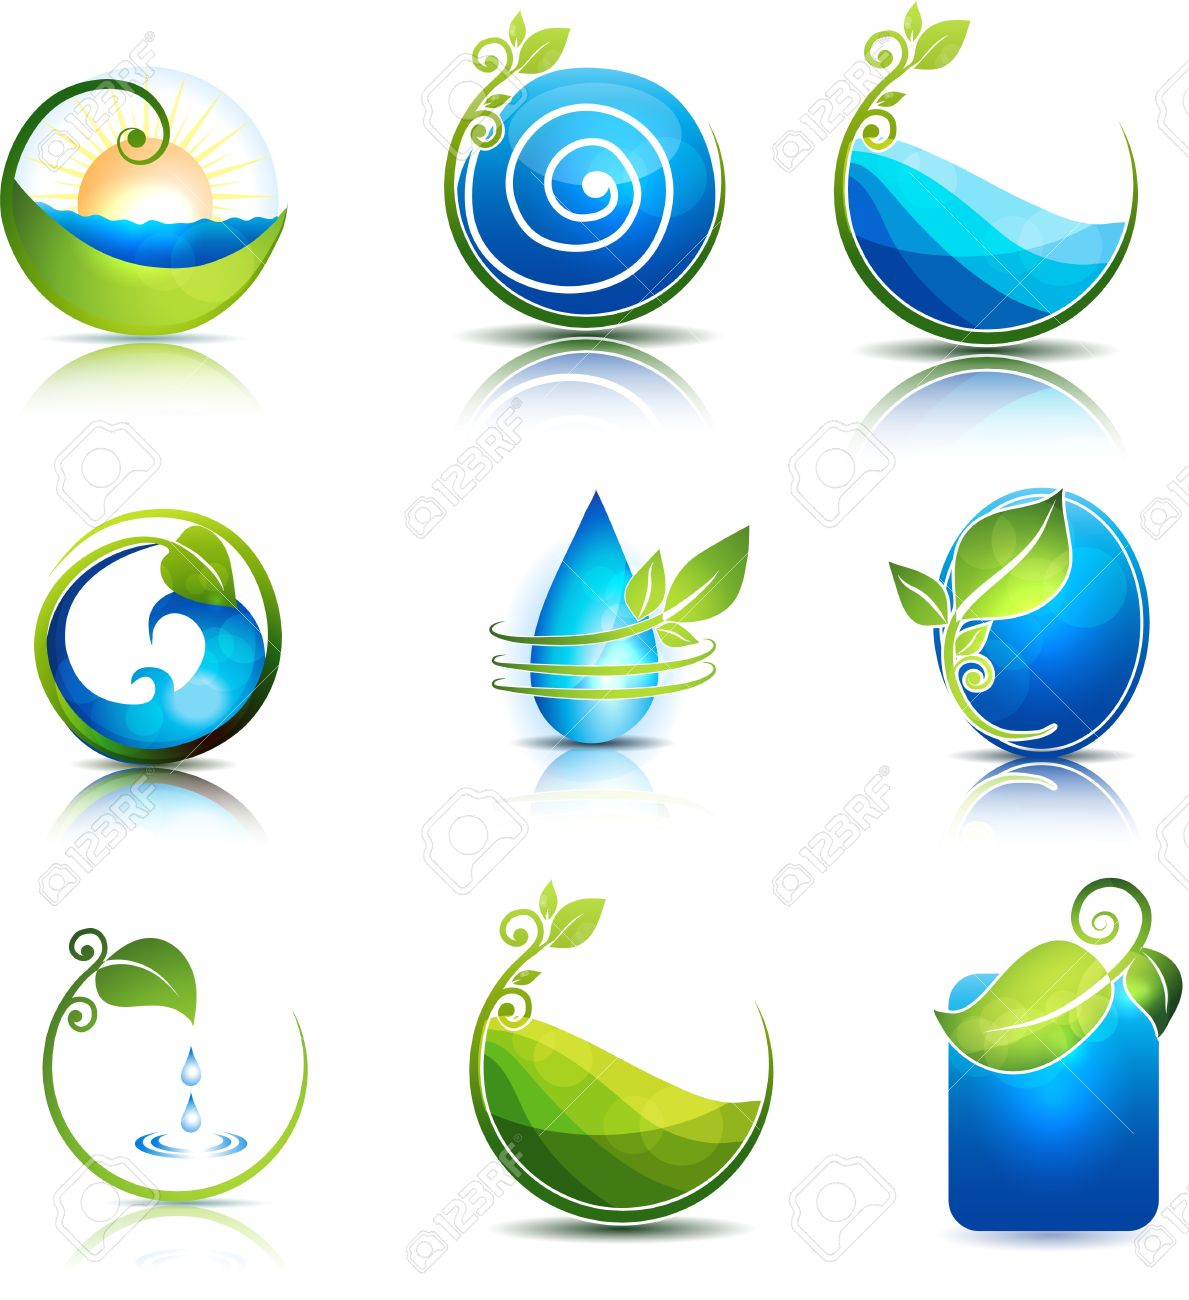 Nature healing symbols water leafs waves and fields clean nature healing symbols water leafs waves and fields clean and fresh feeling stock vector biocorpaavc